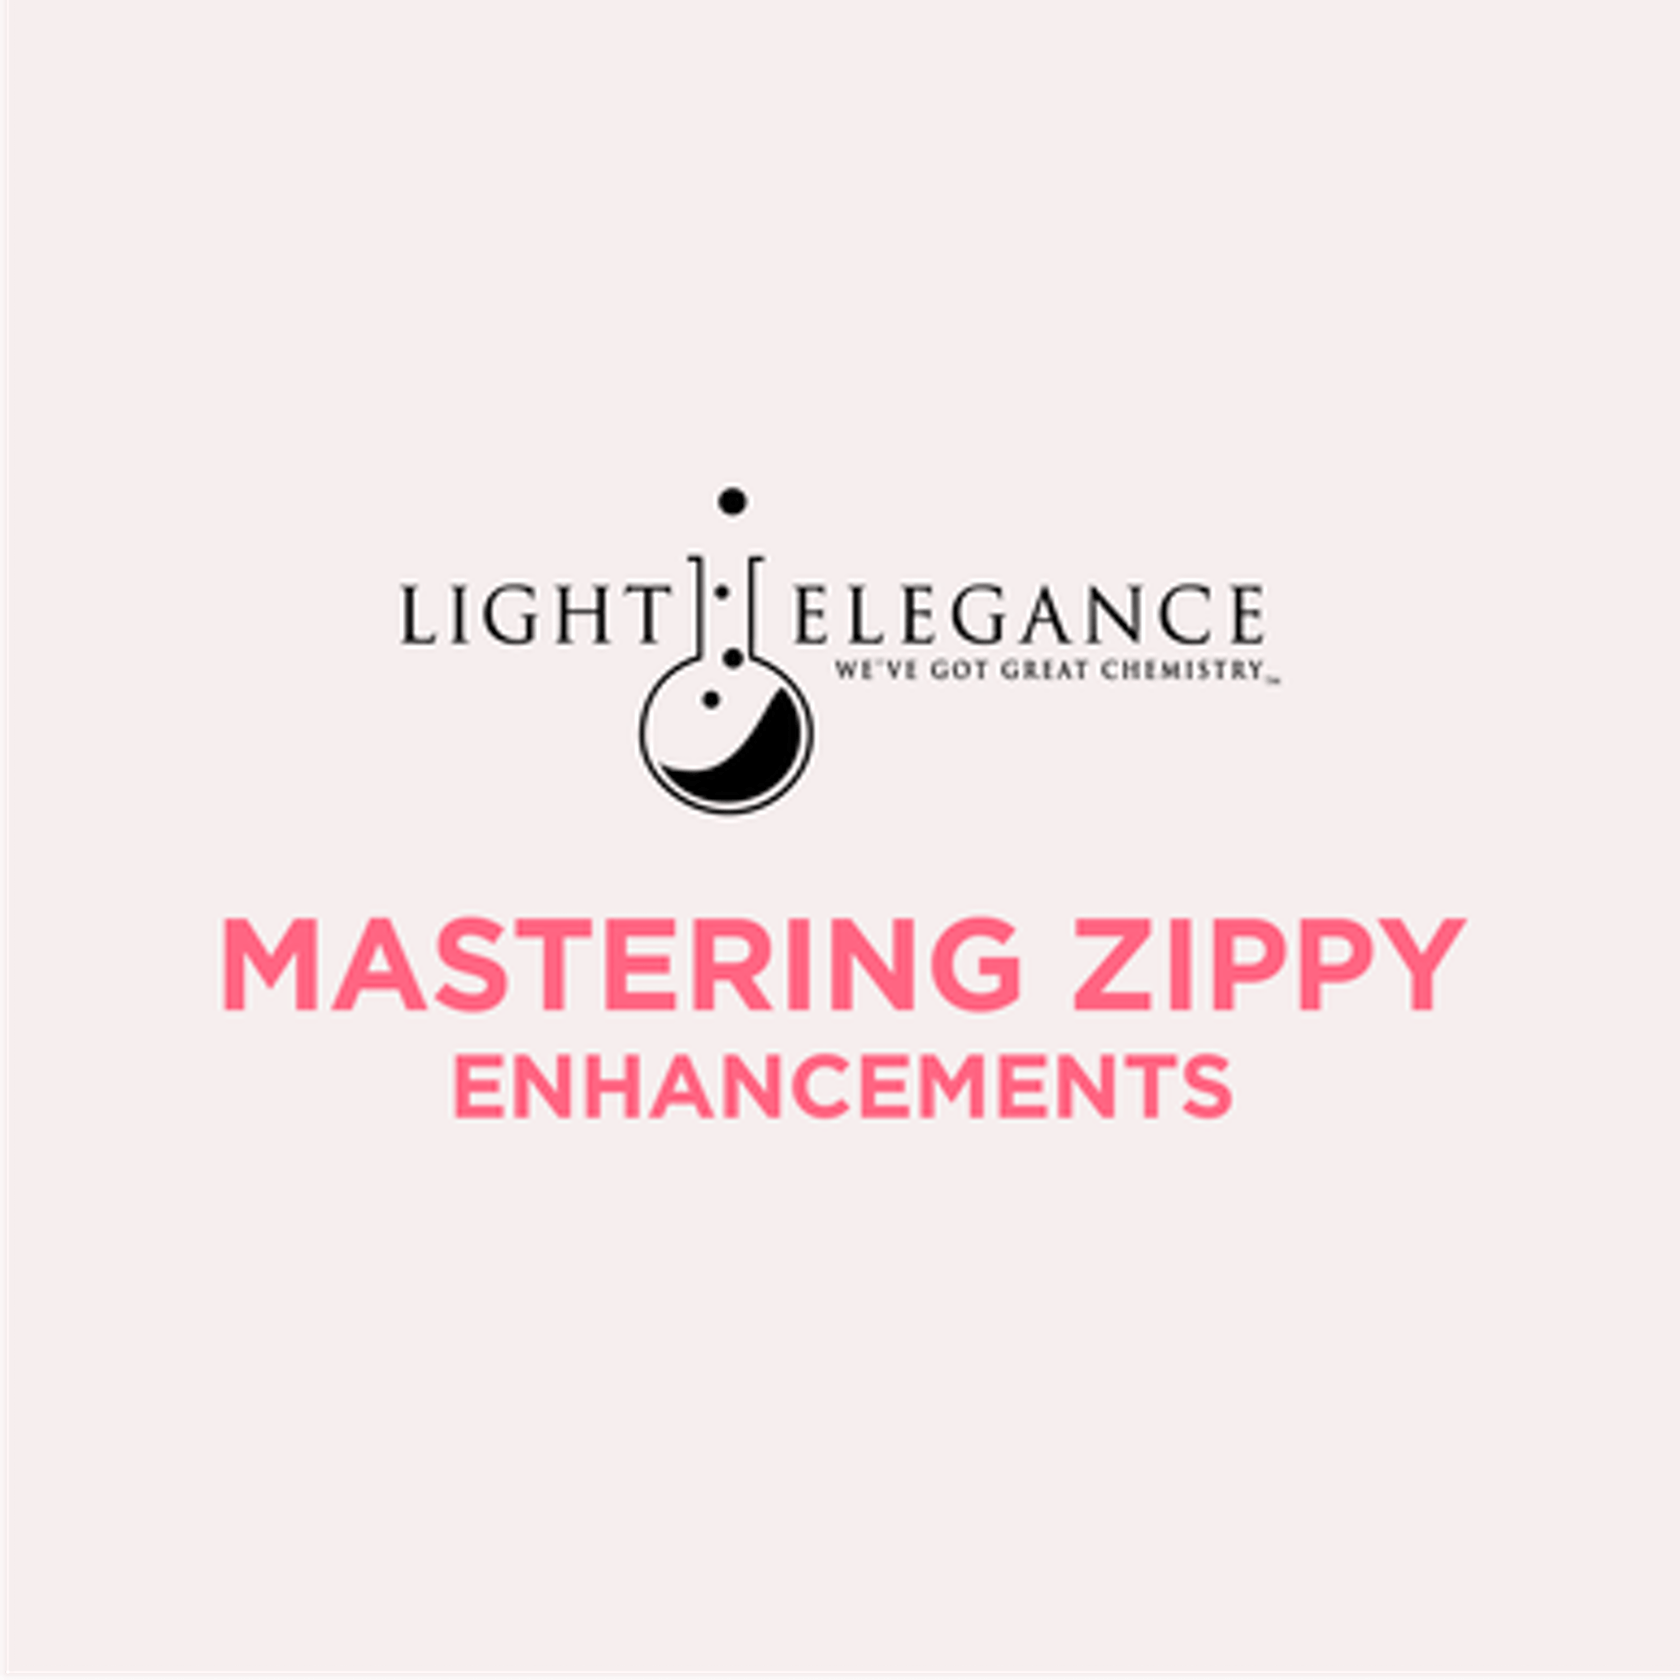 MASTERING ZIPPY (ENHANCEMENTS) - RIGHT HANDED KIT INCLUDED